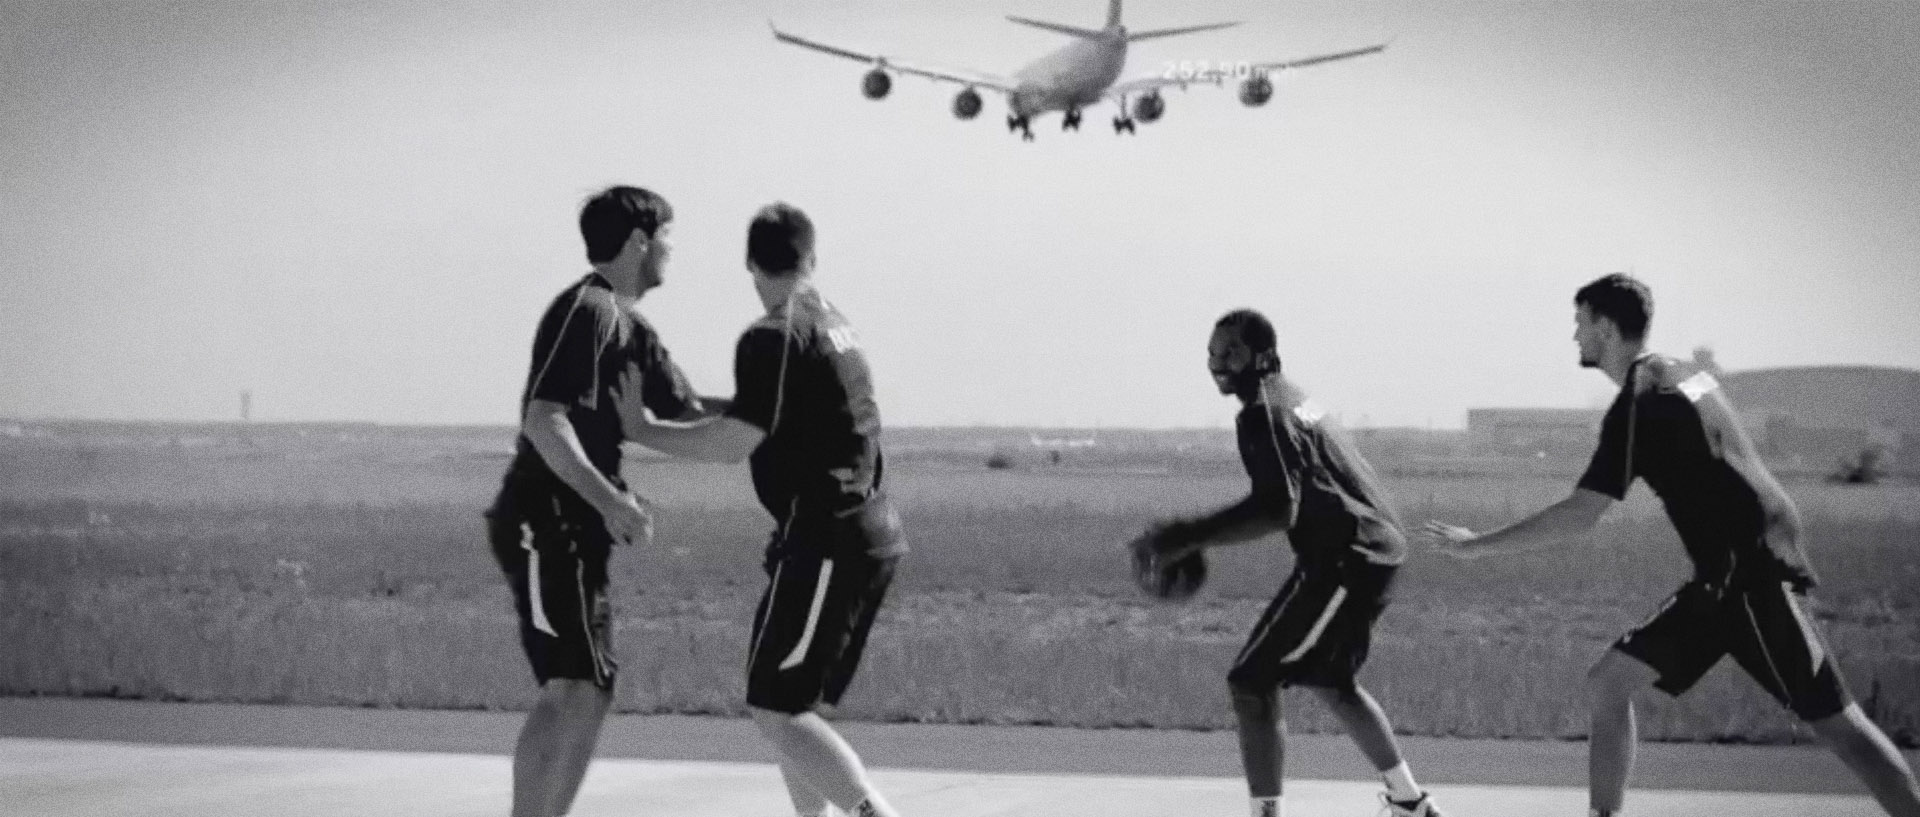 Fraport Skyliners - Director's Cut